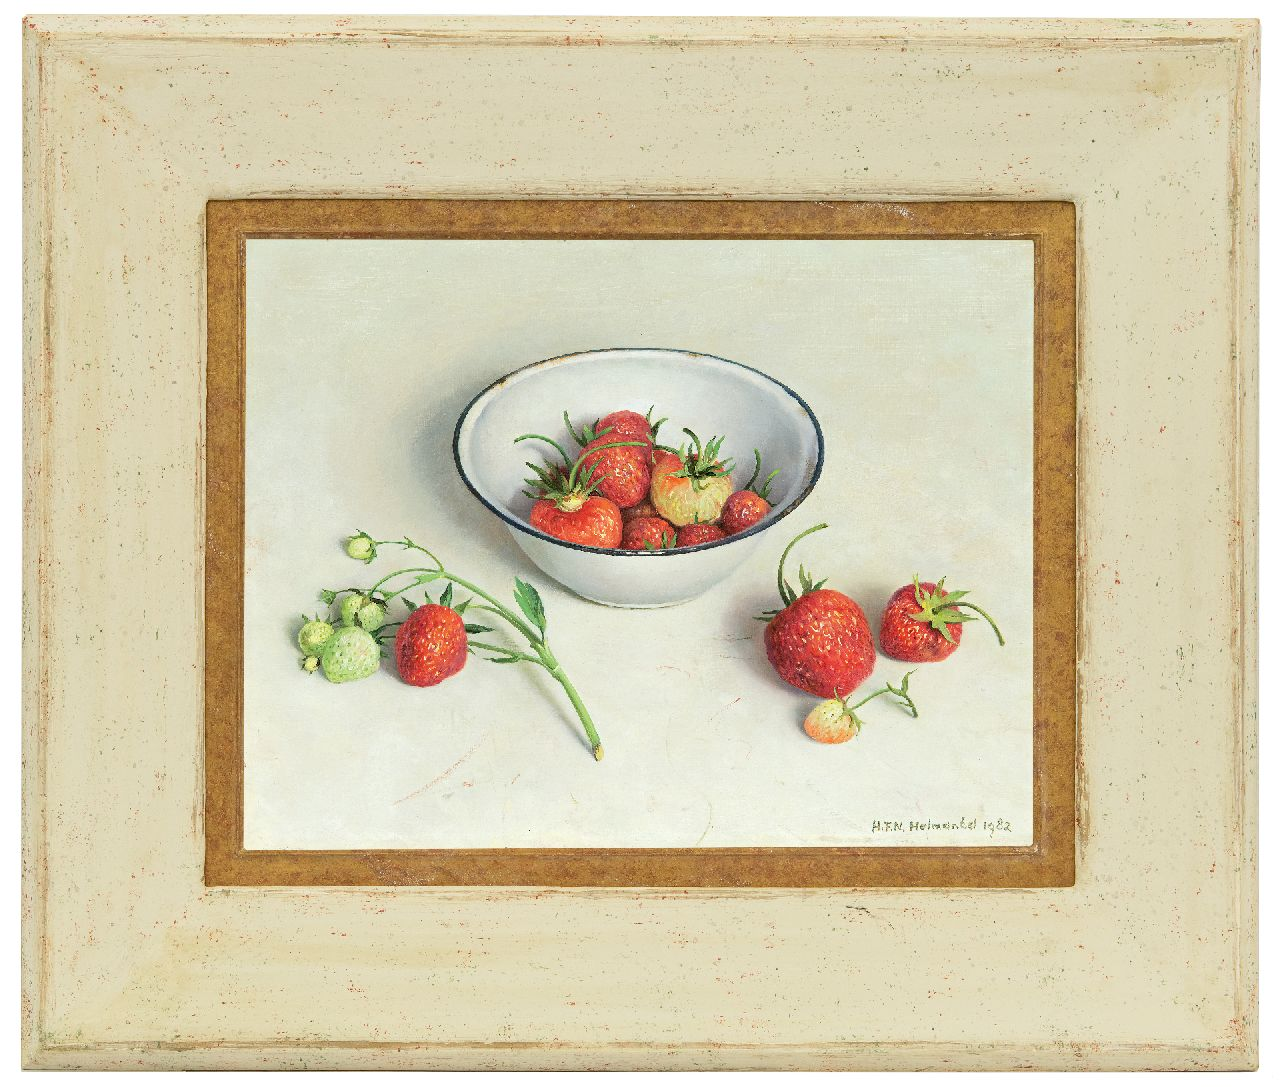 Helmantel H.F.N.  | Hindrik Frans Nicolaas 'Henk' Helmantel | Paintings offered for sale | A still life with an enamel bowl and strawberries, oil on board 26.4 x 34.2 cm, signed l.r. and on the reverse and dated recto and on the reverse '28 juni 1982'